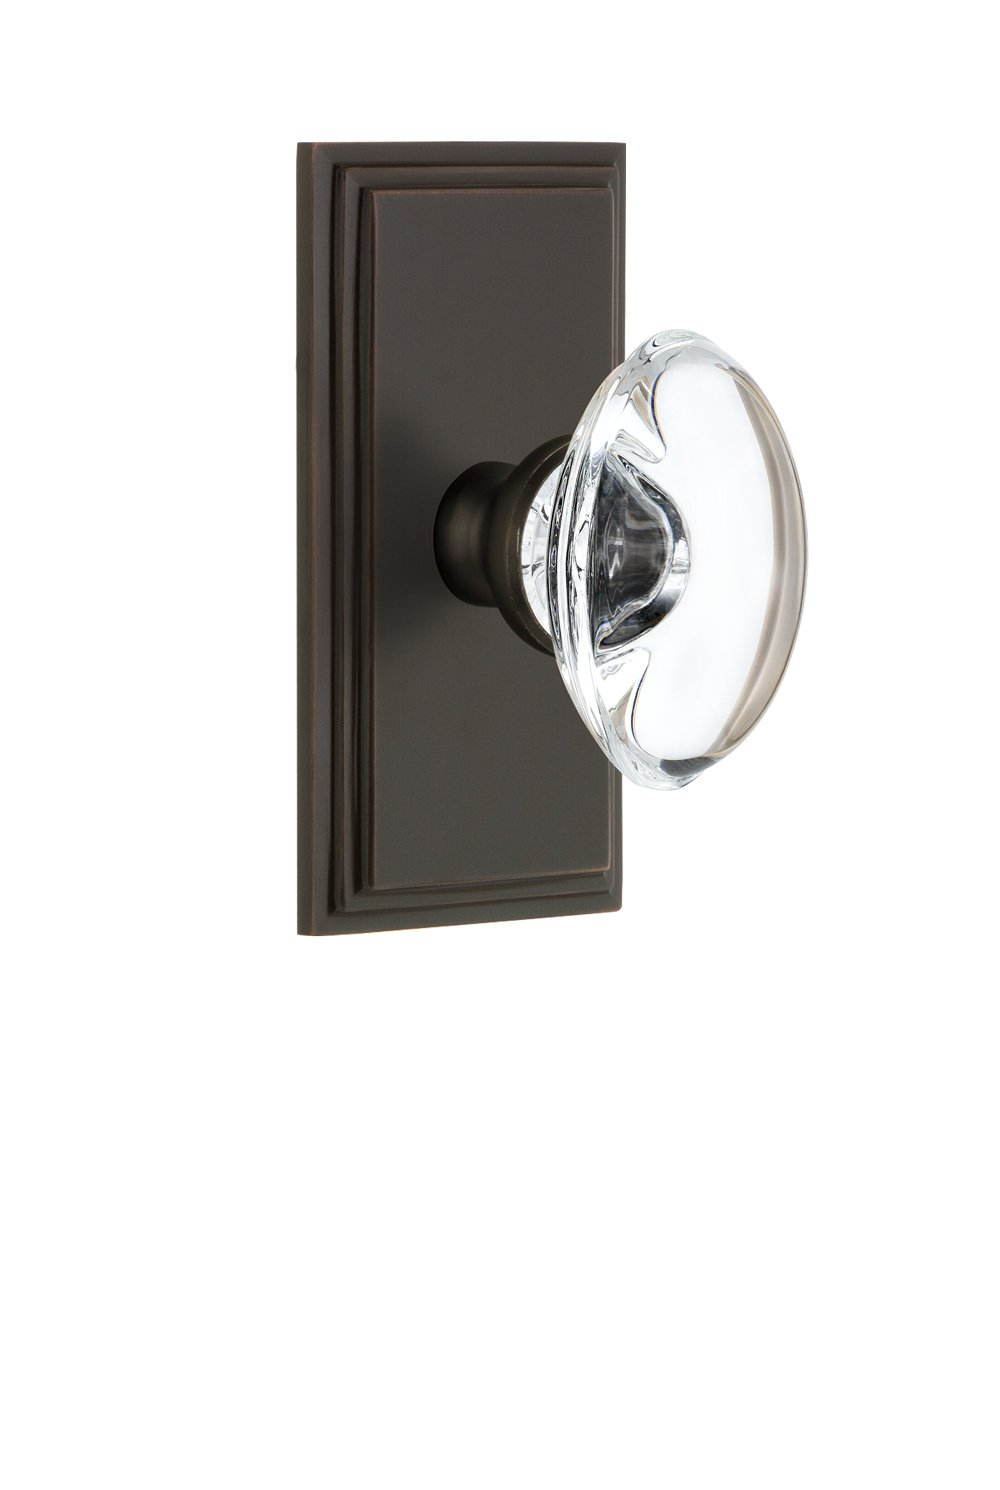 Grandeur 811067 Carre Plate Double Dummy with Provence Crystal Knob in Timeless Bronze